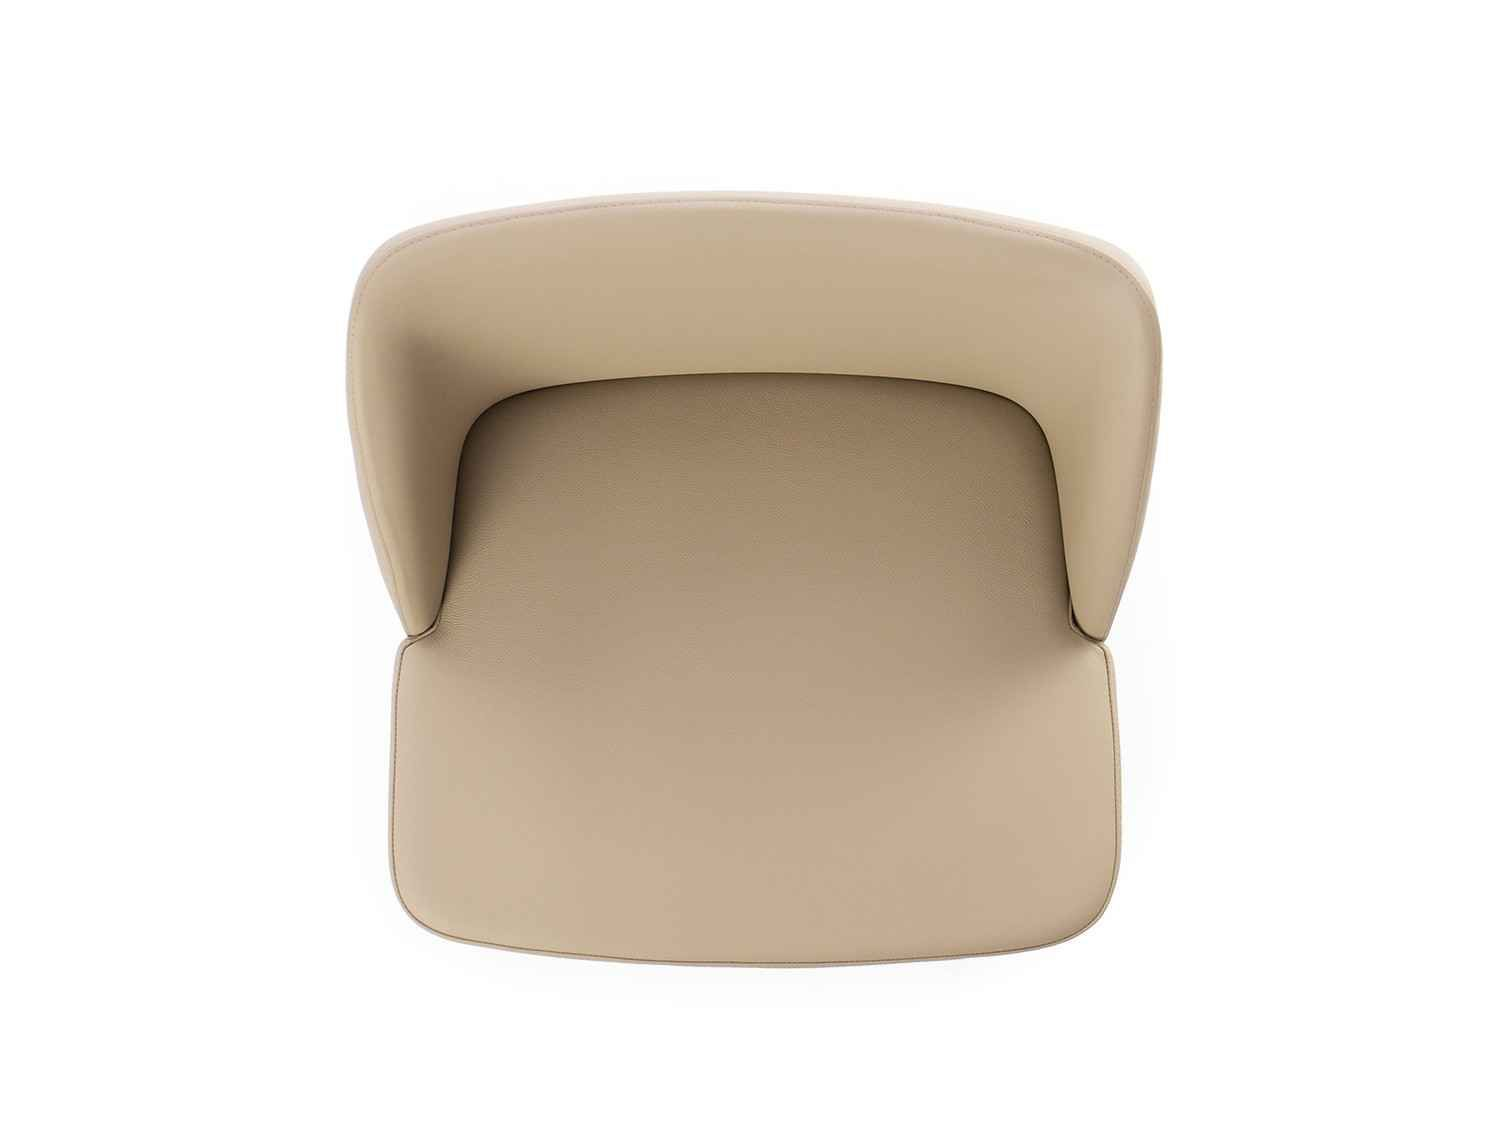 Desk Chair Plan View Folding Kohls Image Result For Top Photoshop Images